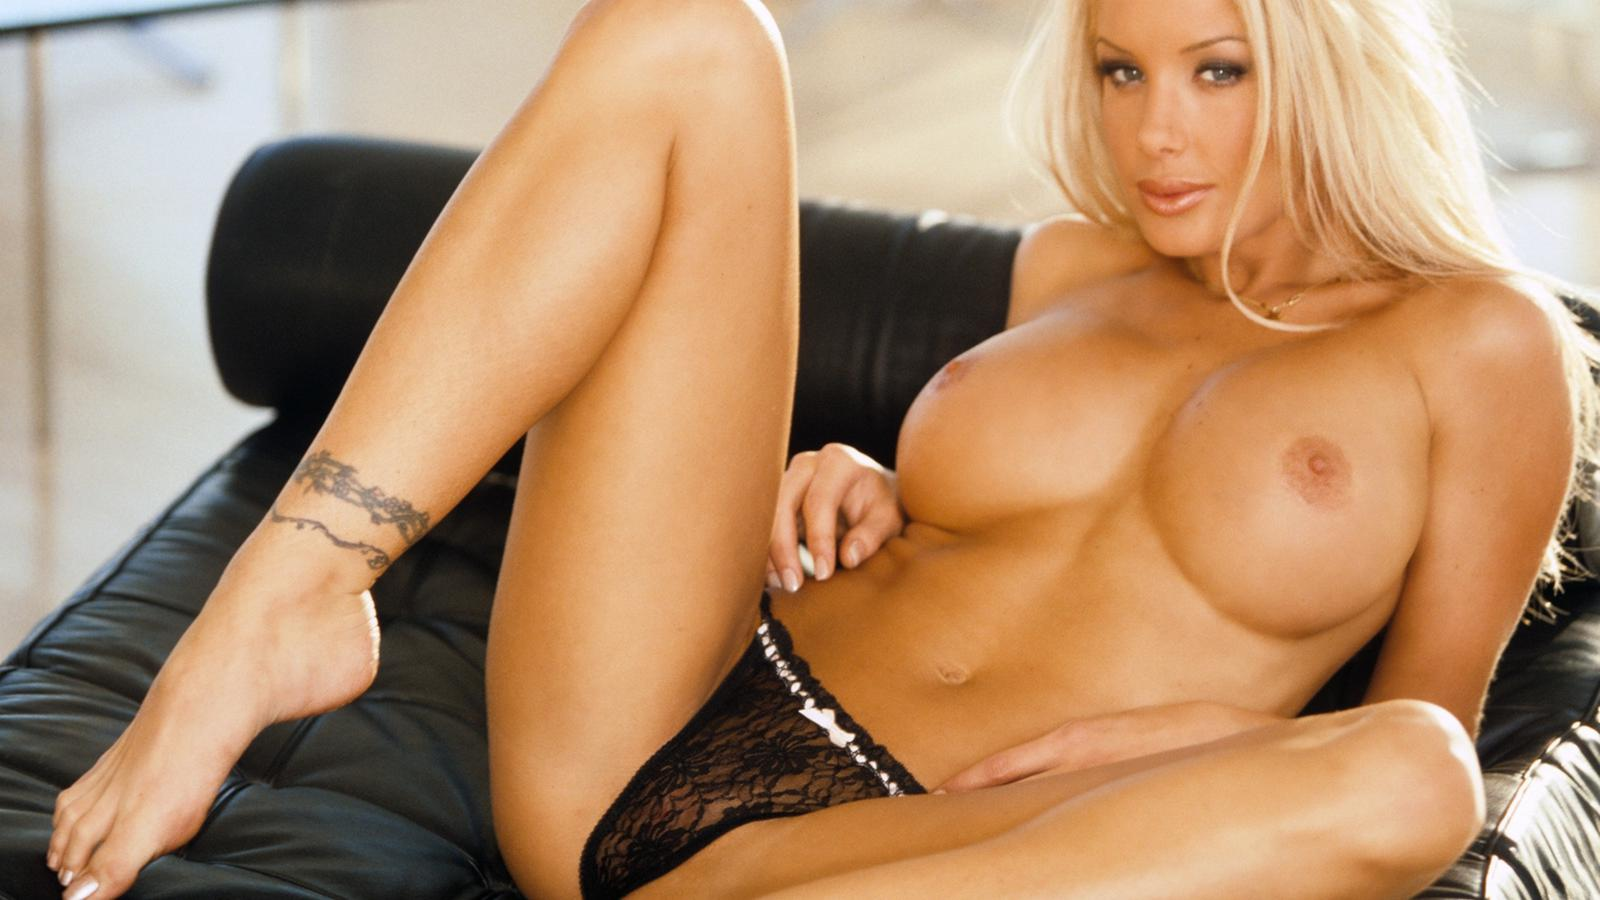 Download photo 1600x900, charis boyle, playmate, blonde ...